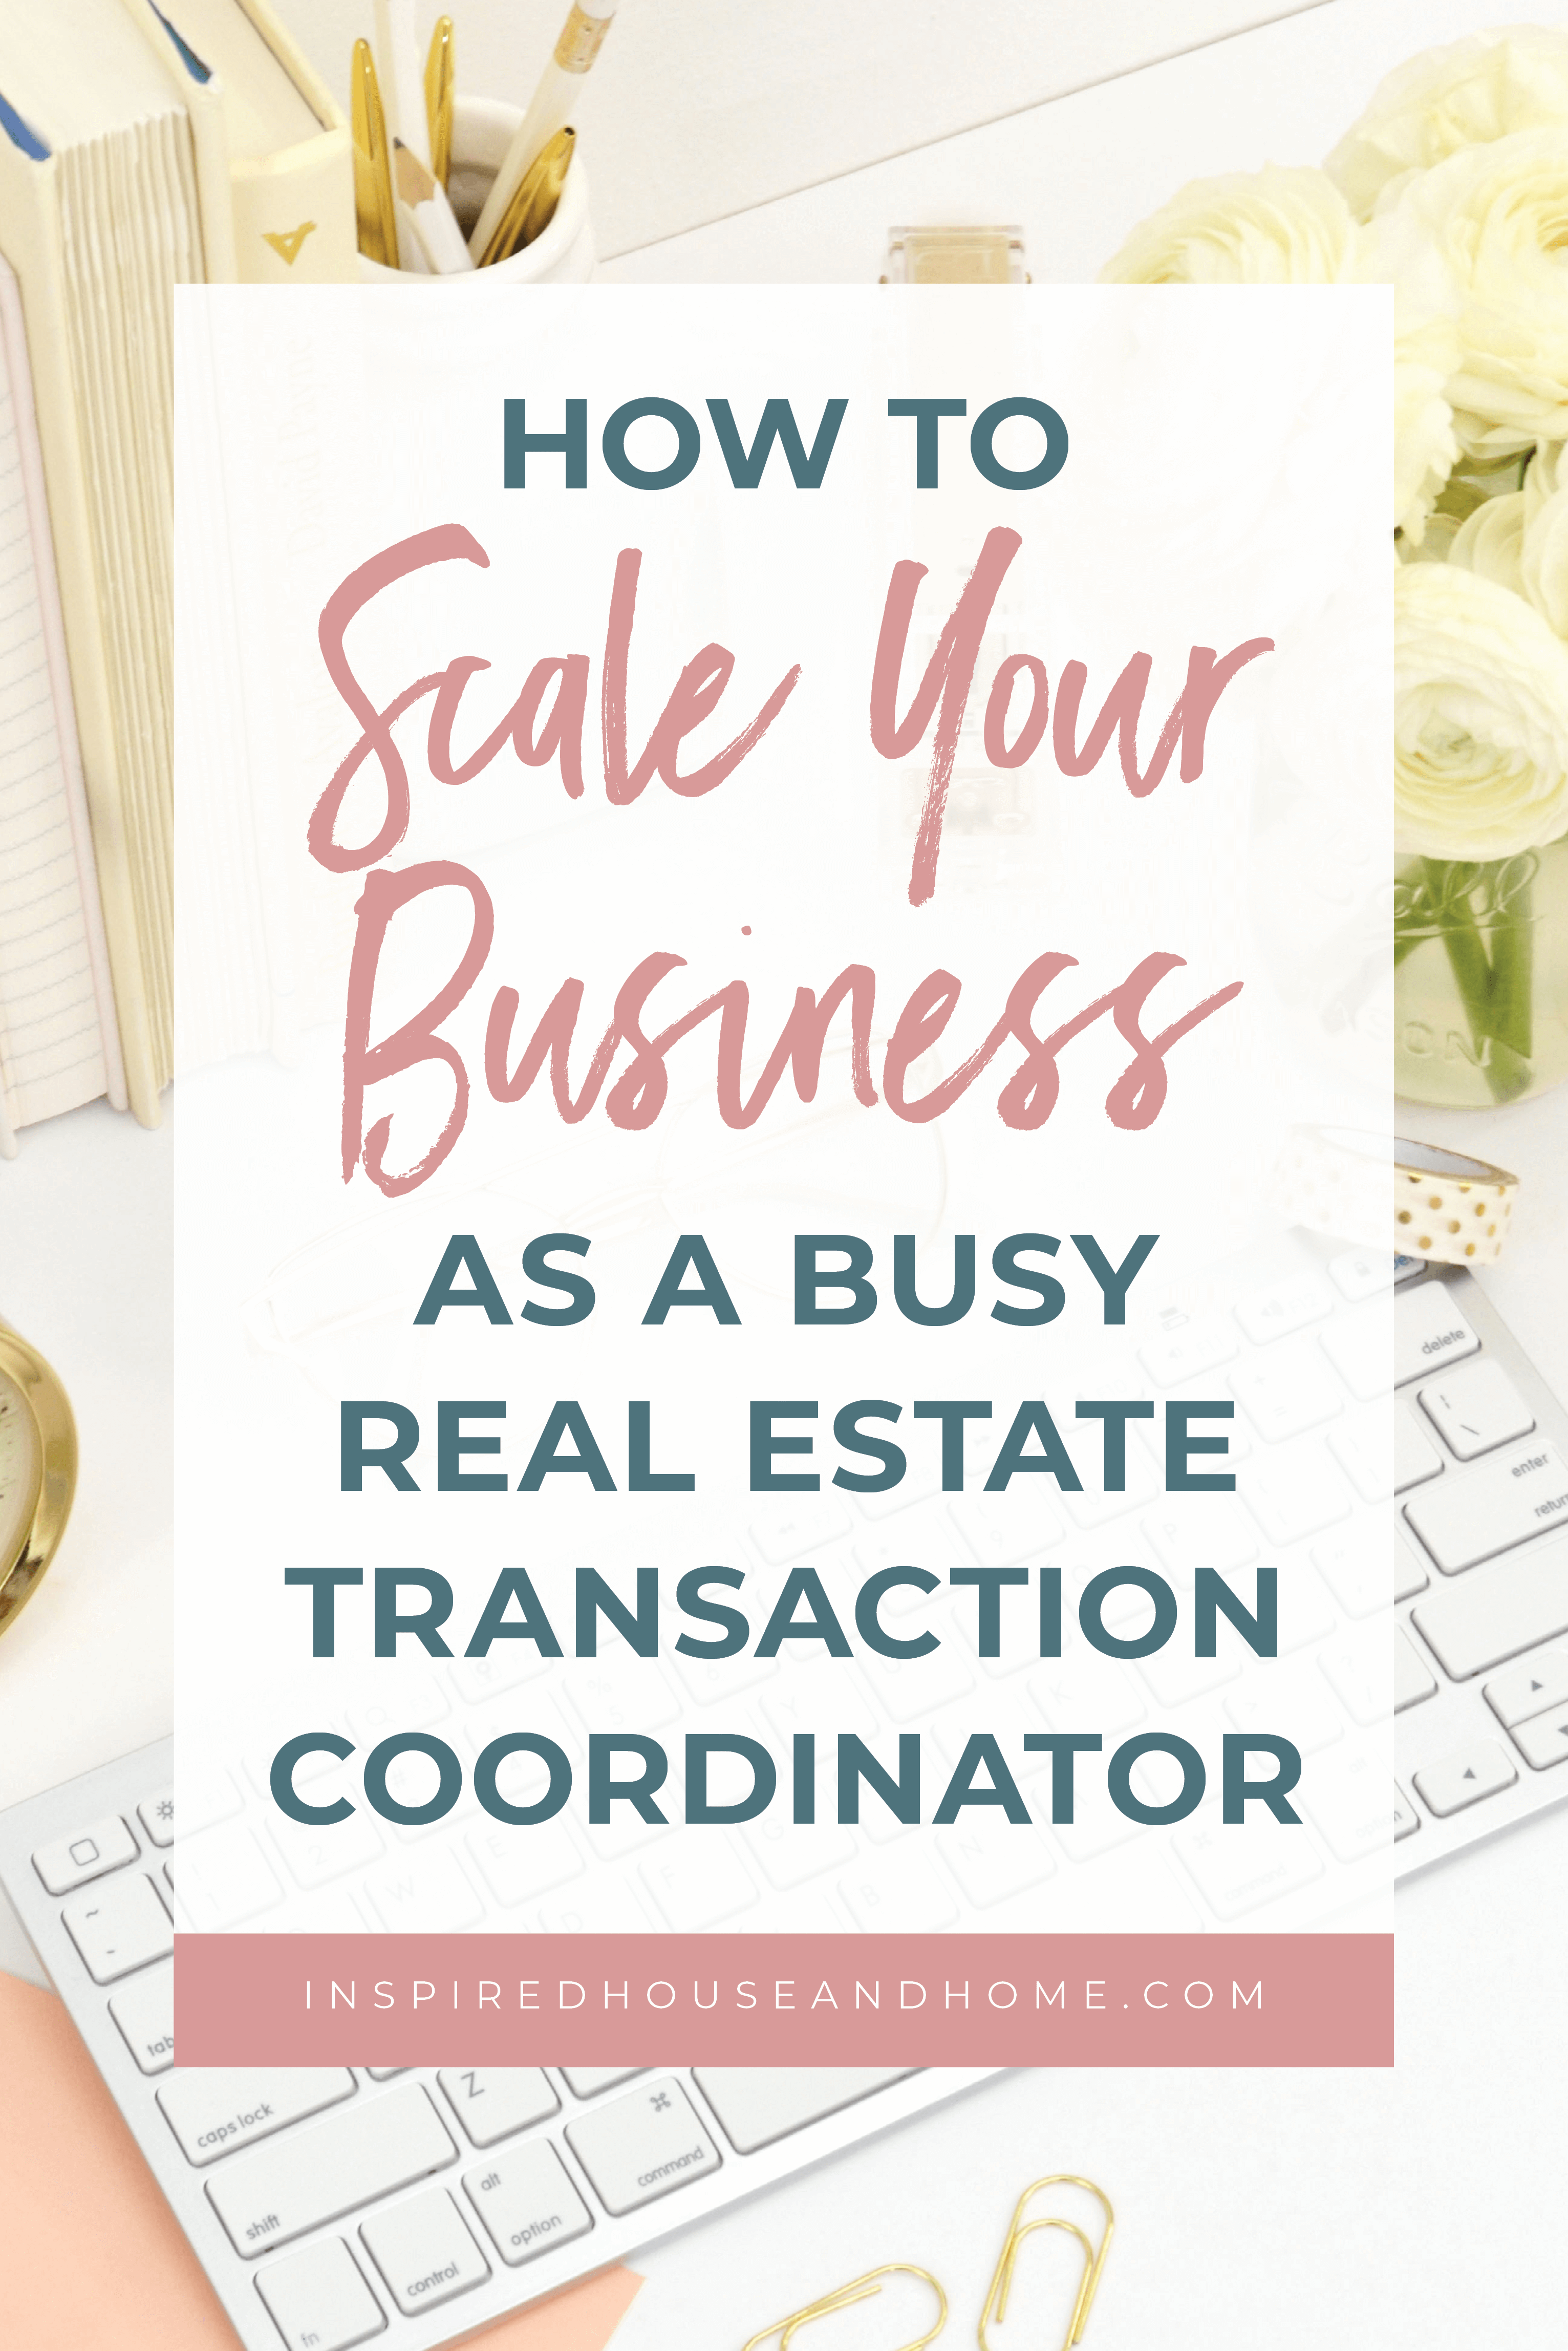 How To Scale Your Business As A Busy Real Estate Transaction Coordinator | Inspired House and Home